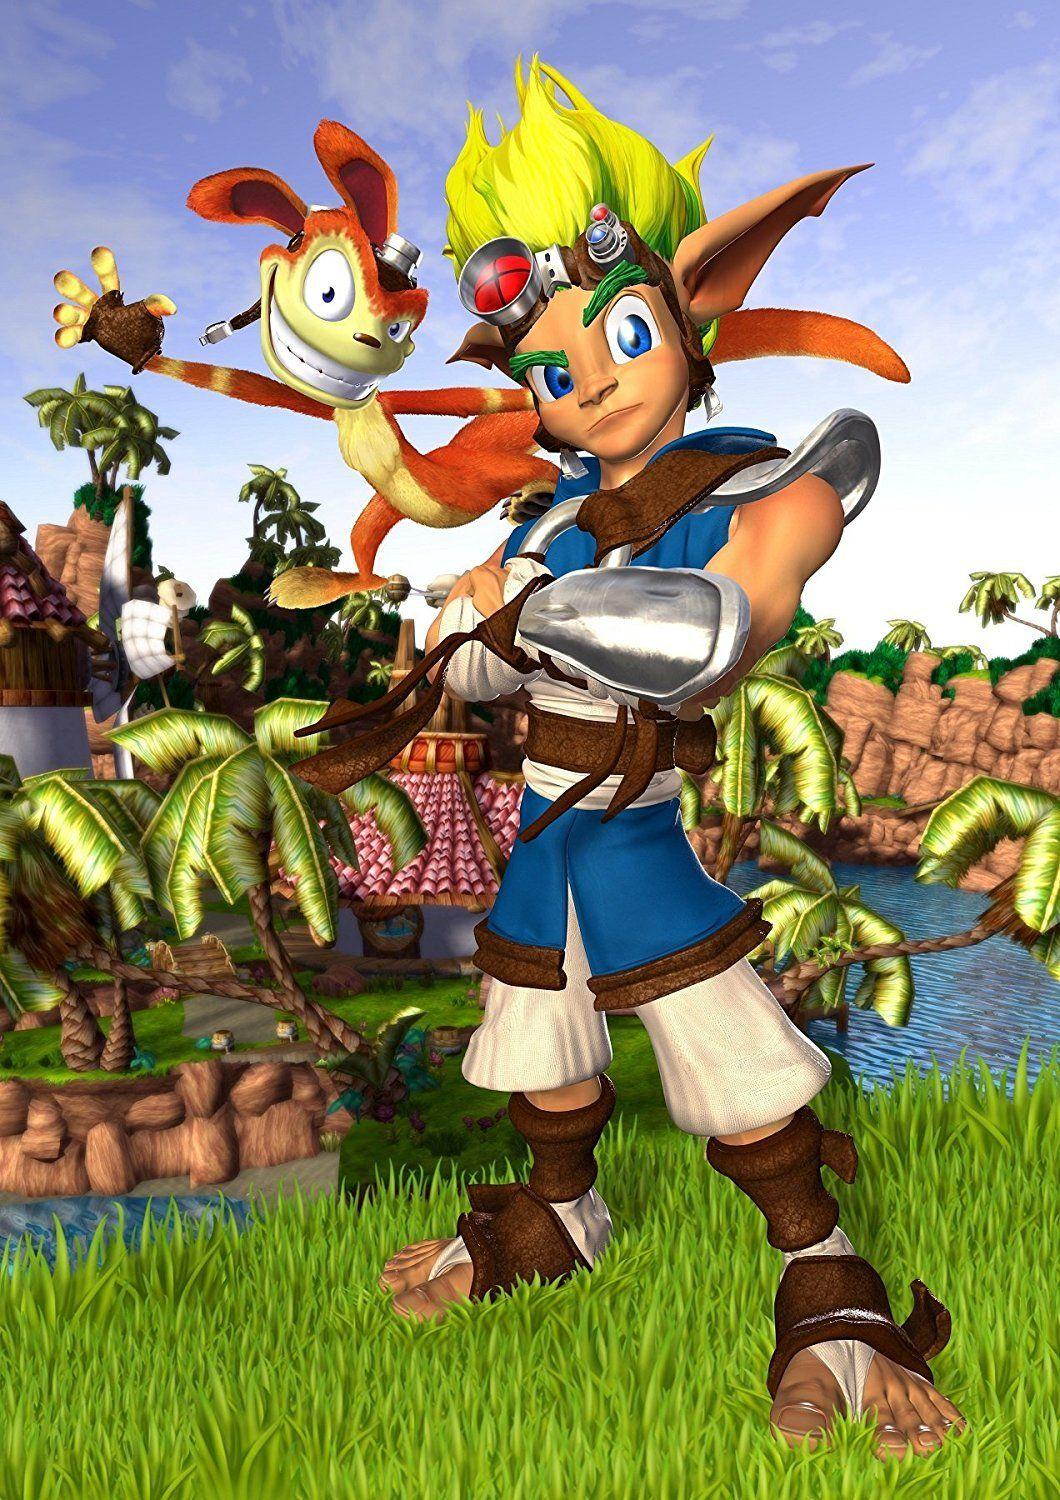 Jak and Daxter Poster Poster, Anime, Video game posters